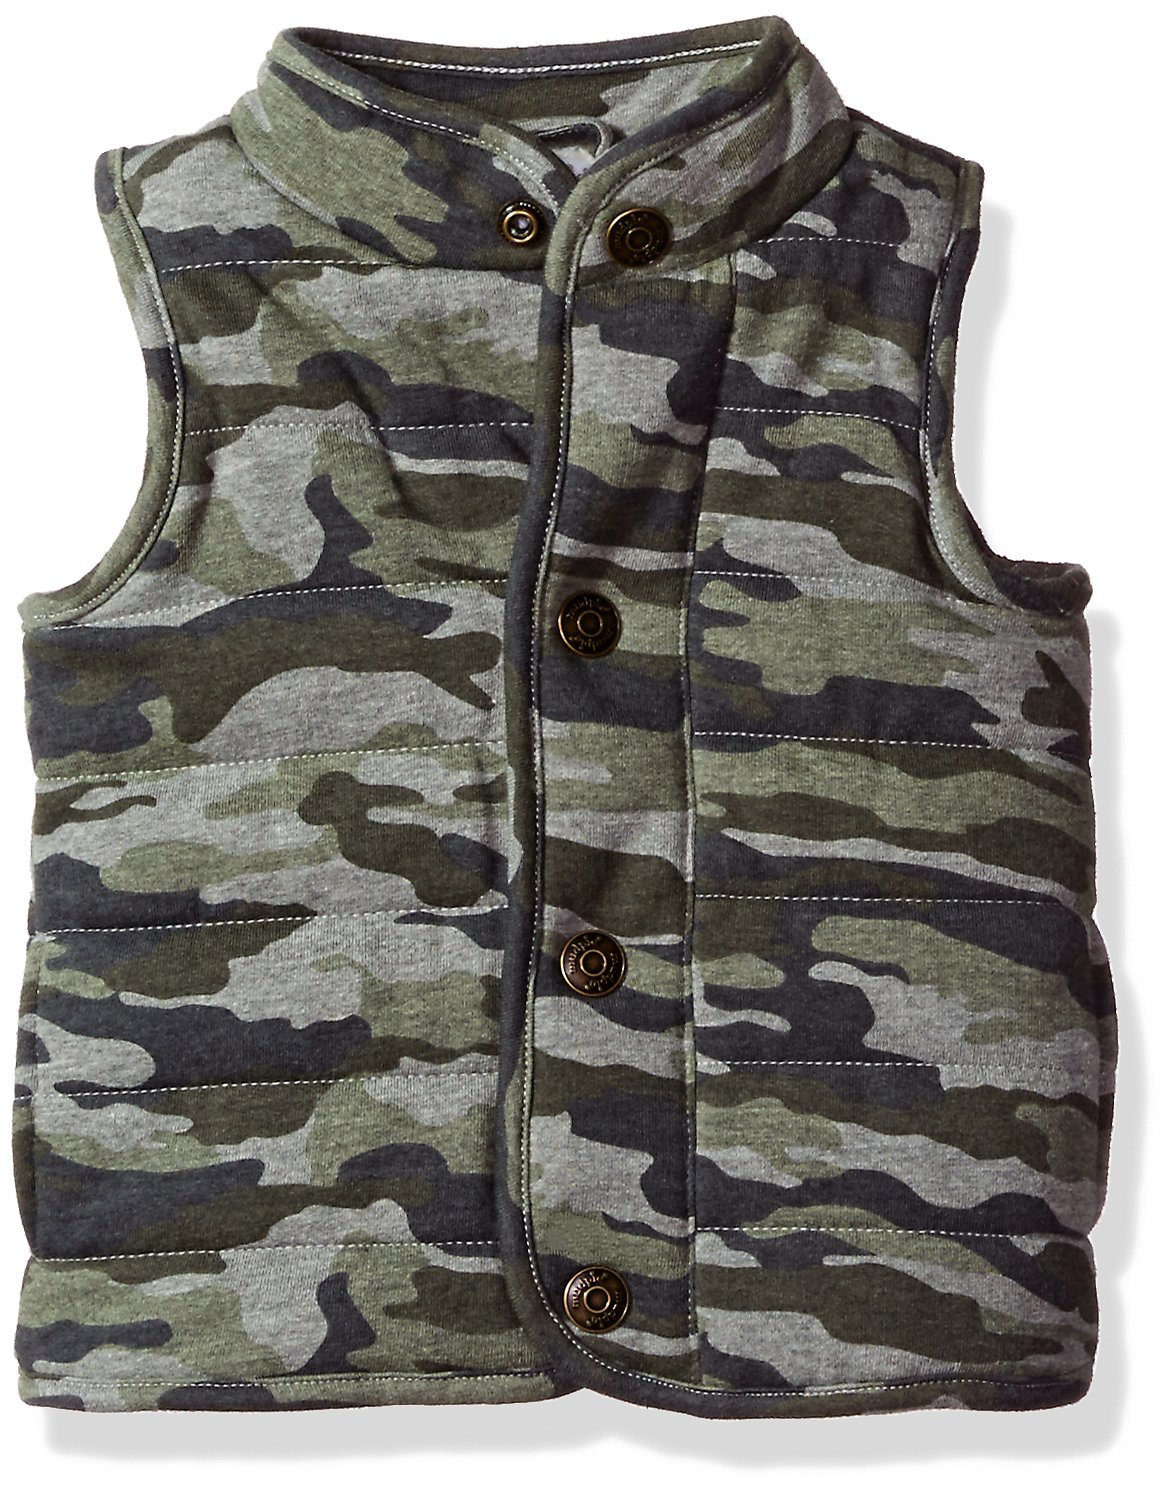 Mud Pie Baby Boys' Toddler Quilted Vest Sherpa Lined, camo, LG/ 4T-5T by Mud Pie